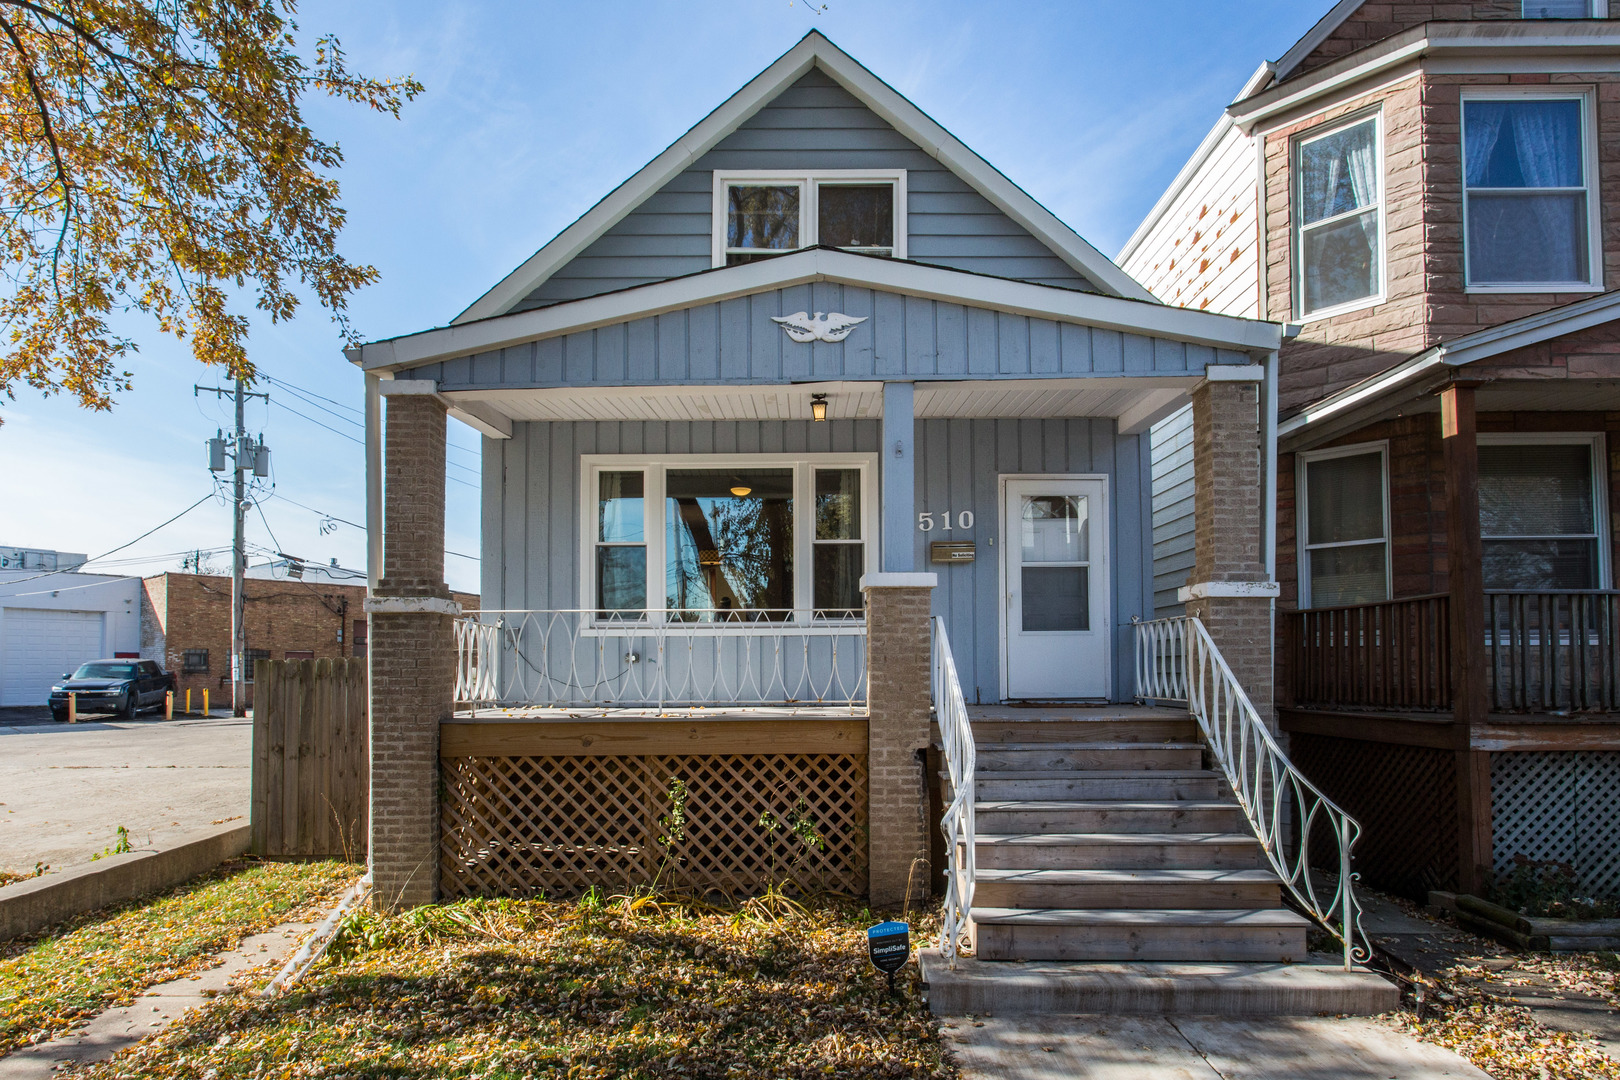 Property for sale at 3510 North Keeler Avenue, Chicago,  Il 60641